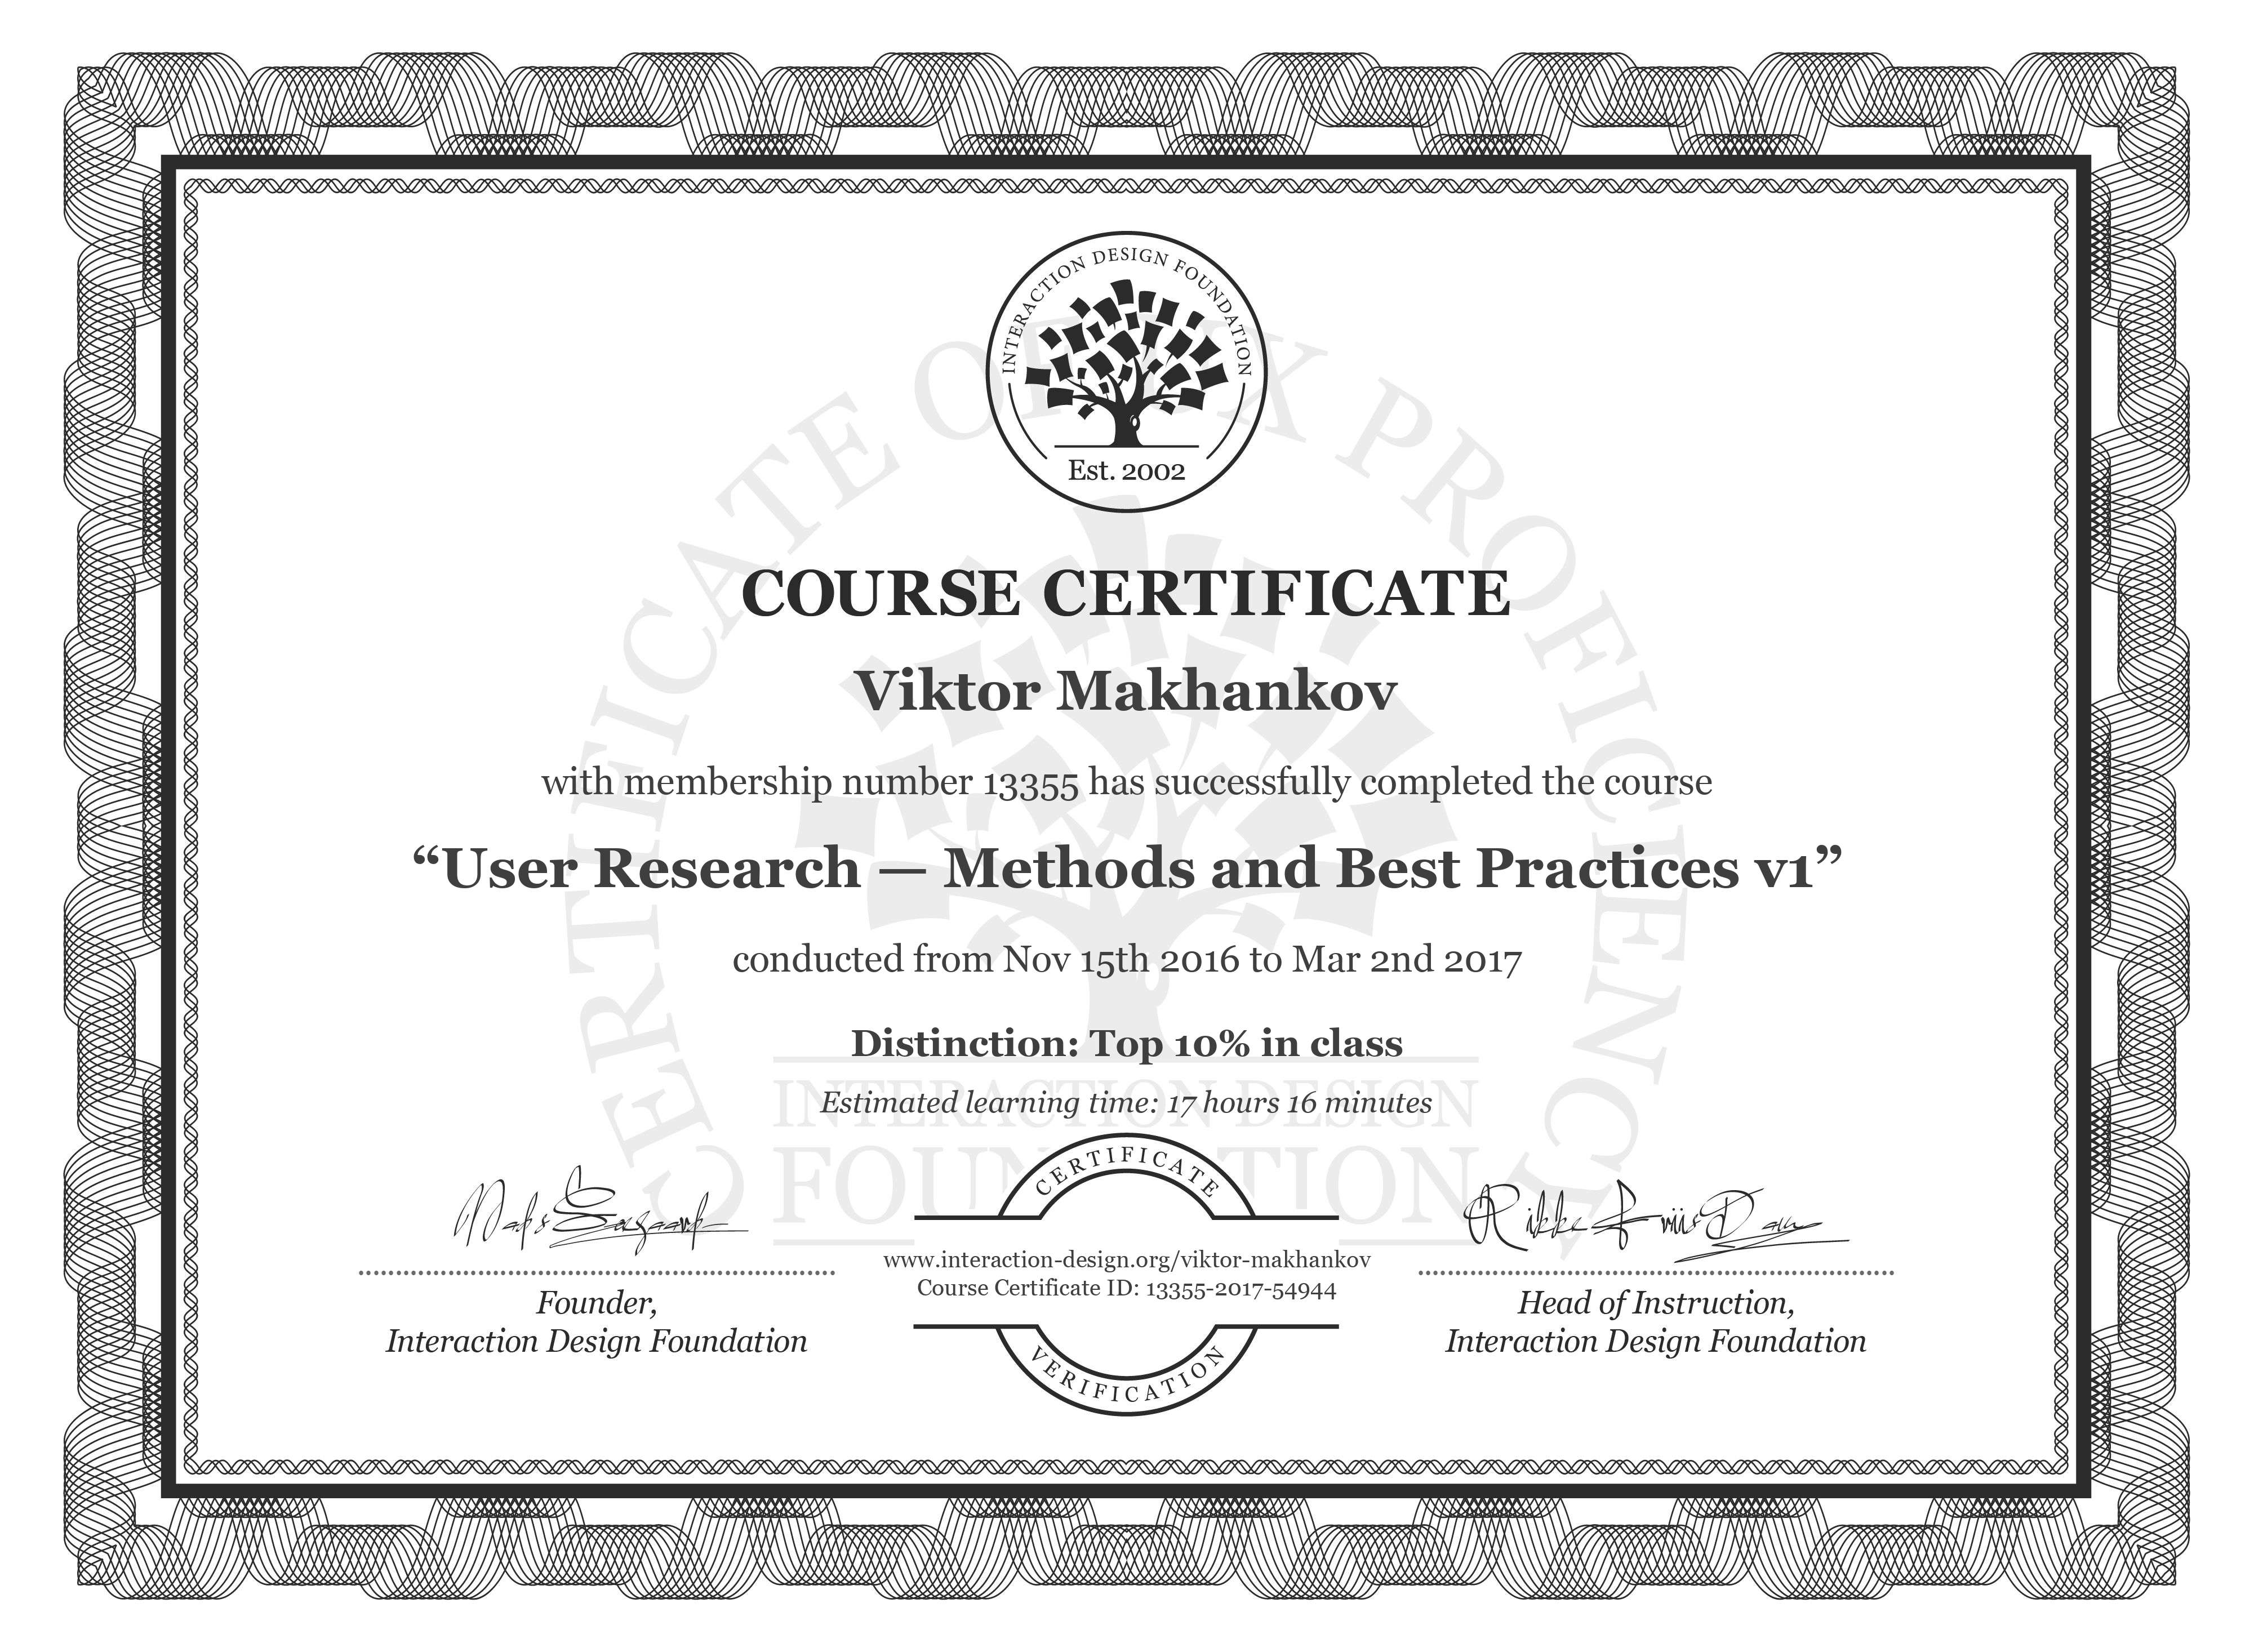 Viktor Makhankov's Course Certificate: User Research — Methods and Best Practices